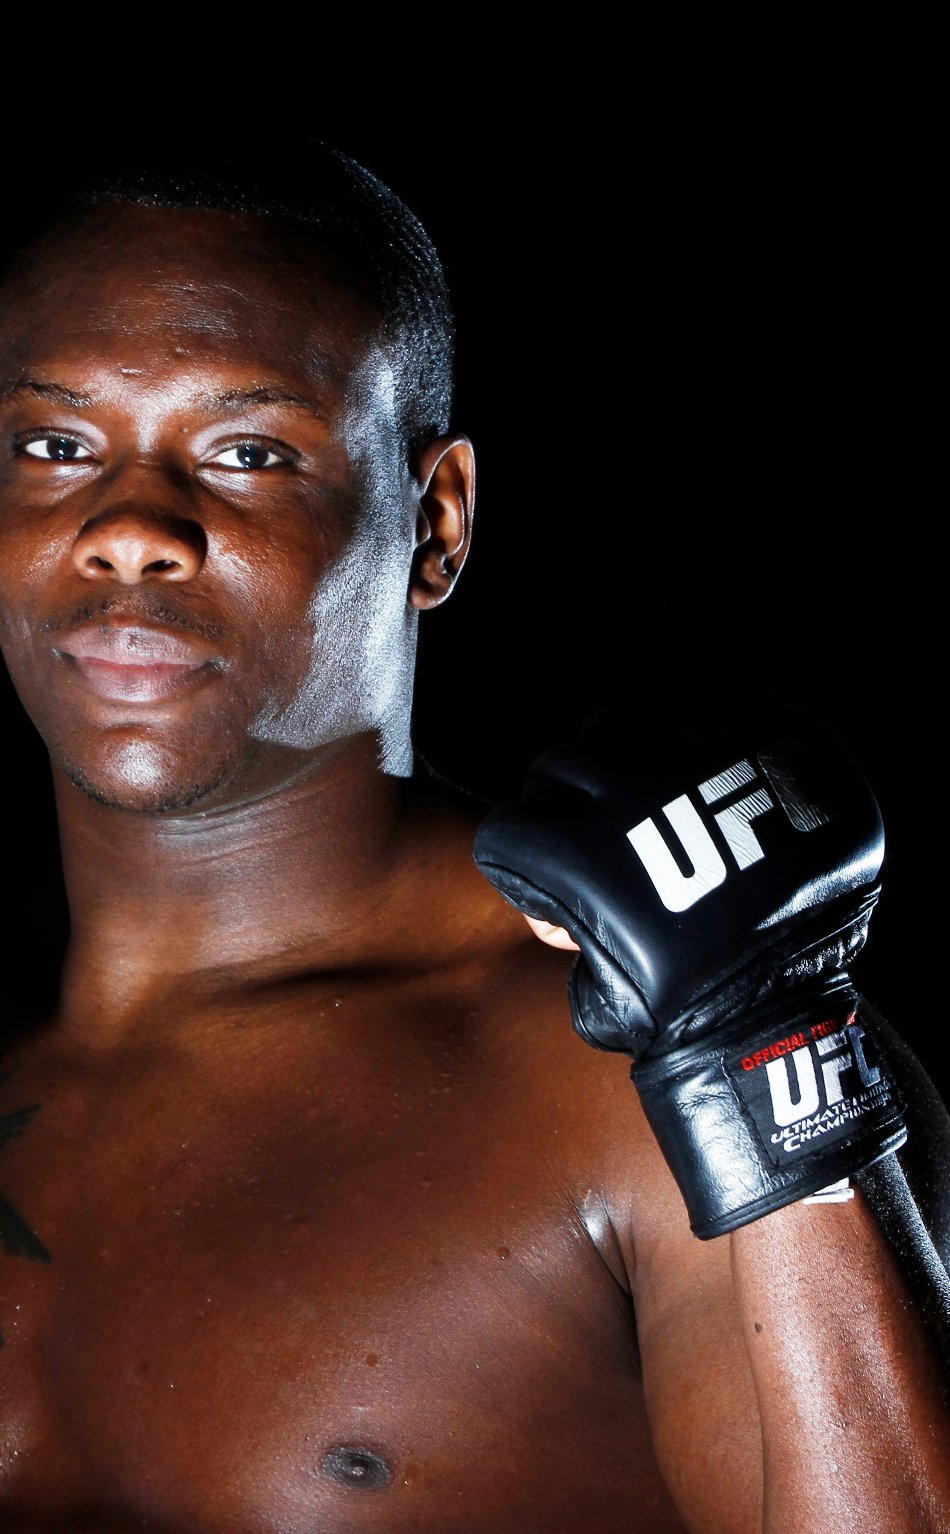 950x1534 ovince saint preux ultimate fighting championship 950x1534